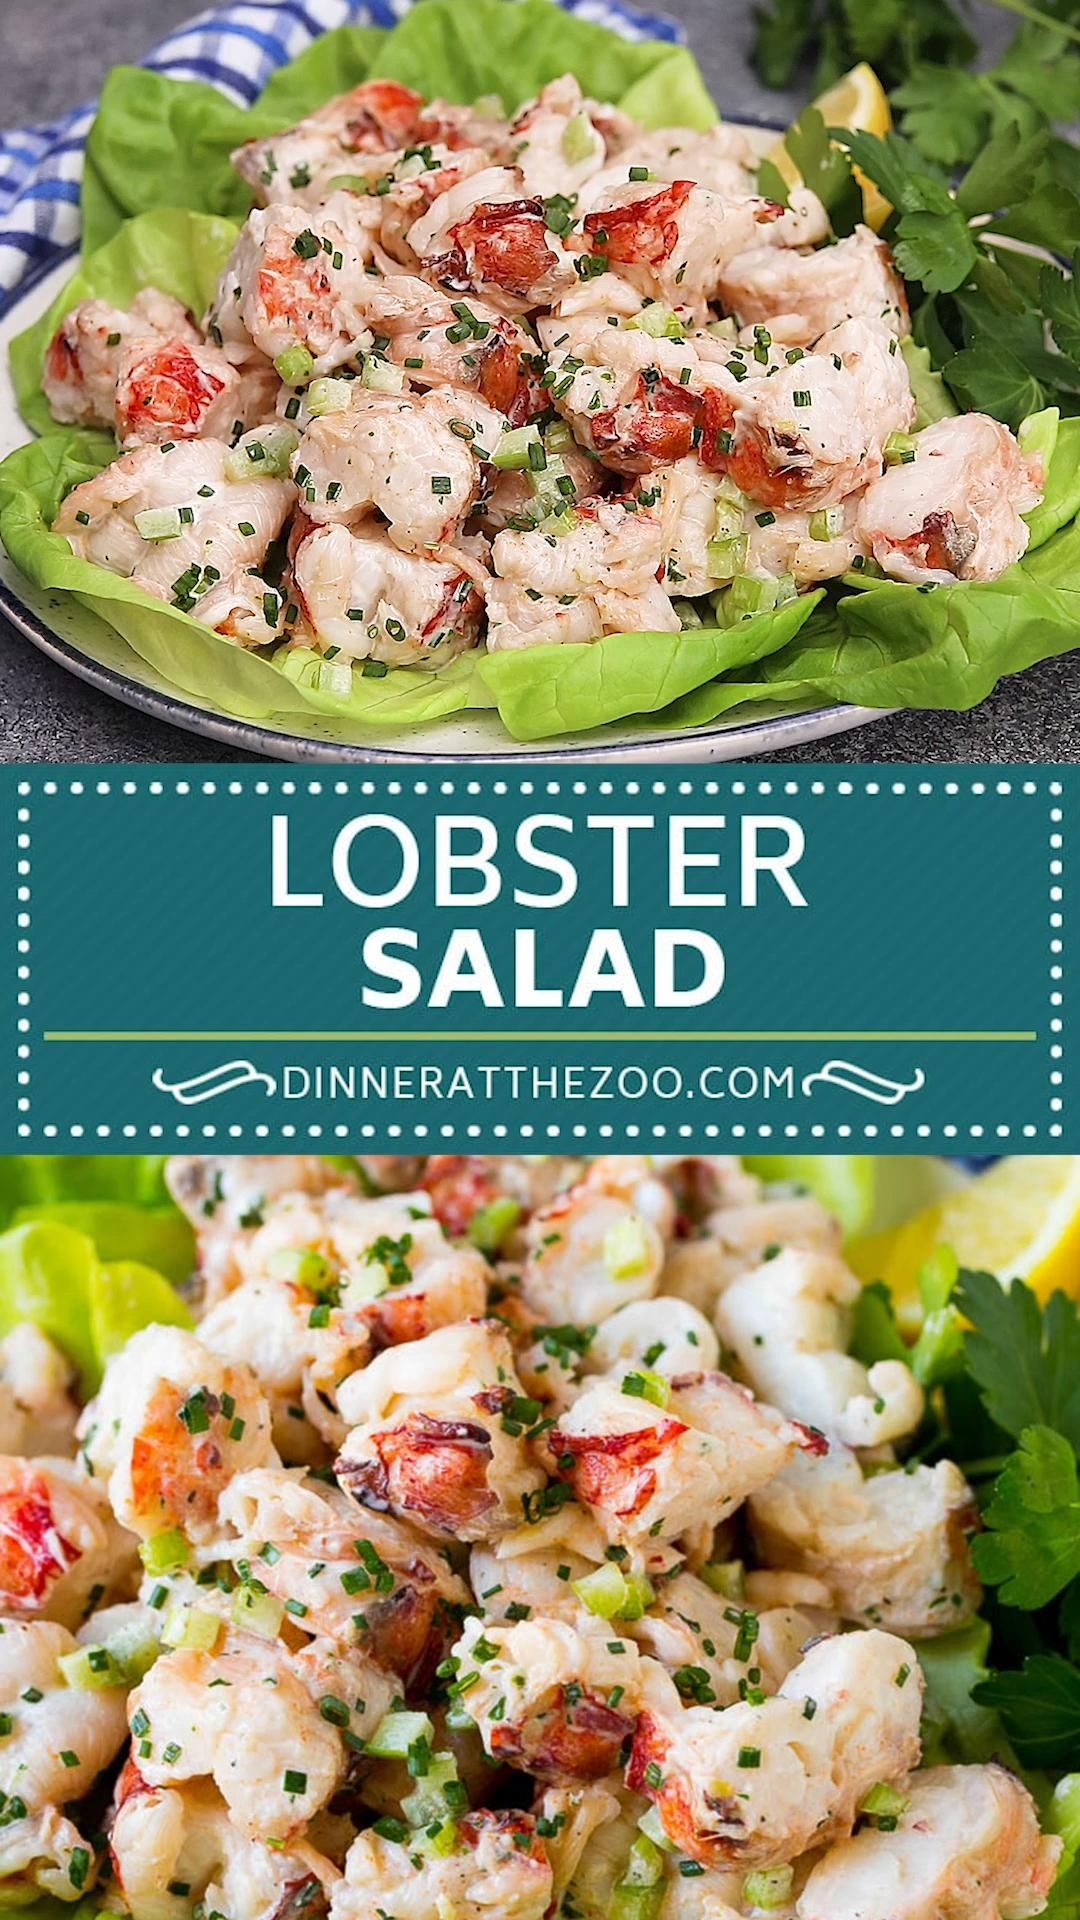 This lobster salad is a combination of fresh lobster meat, vegetables and herbs in a light and creamy dressing.